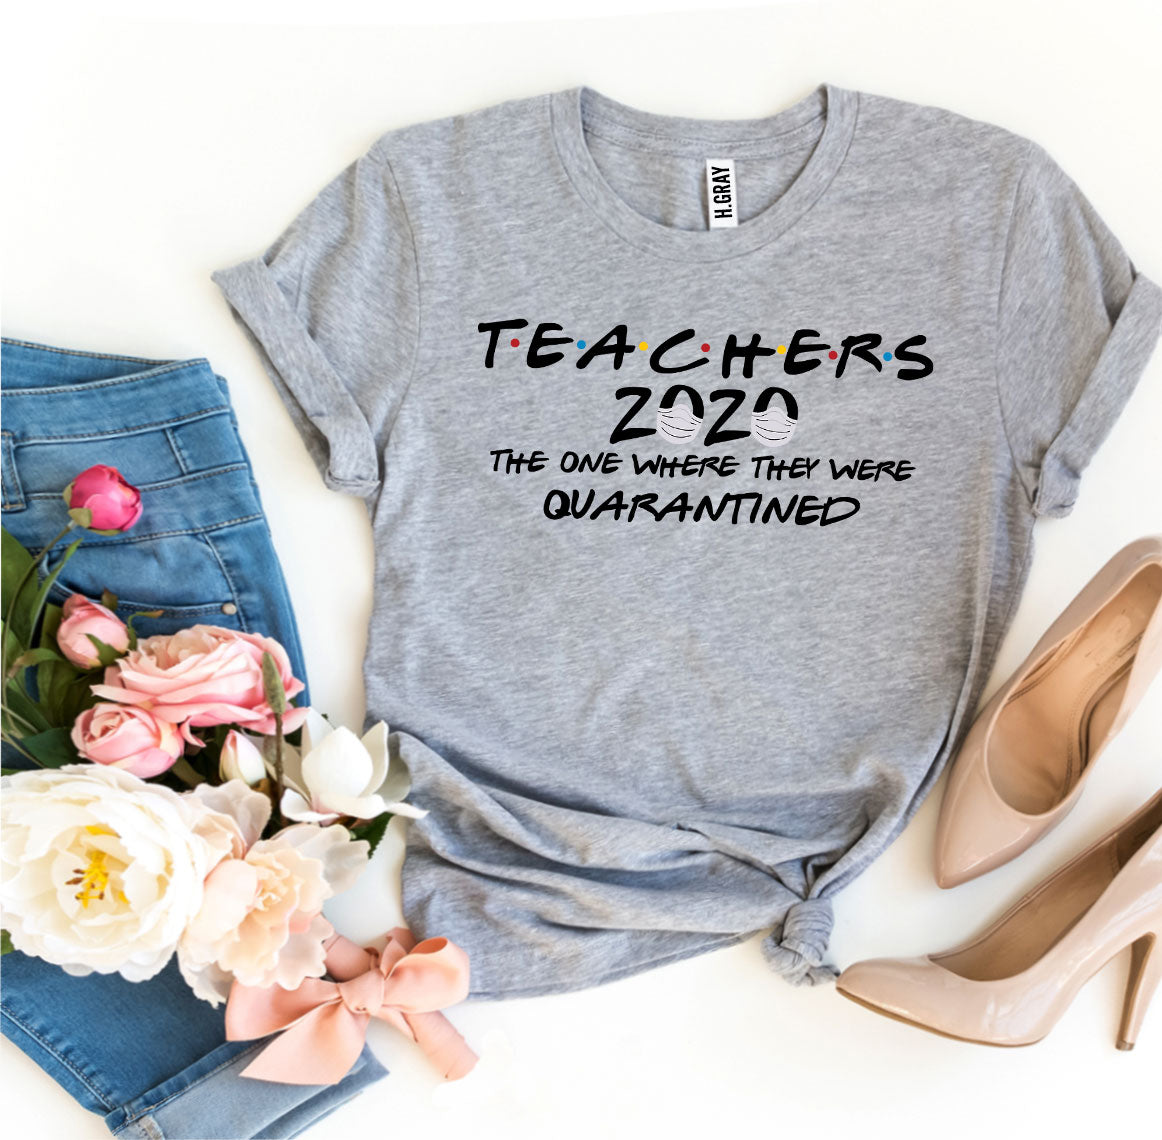 Teachers 2020 T-shirt